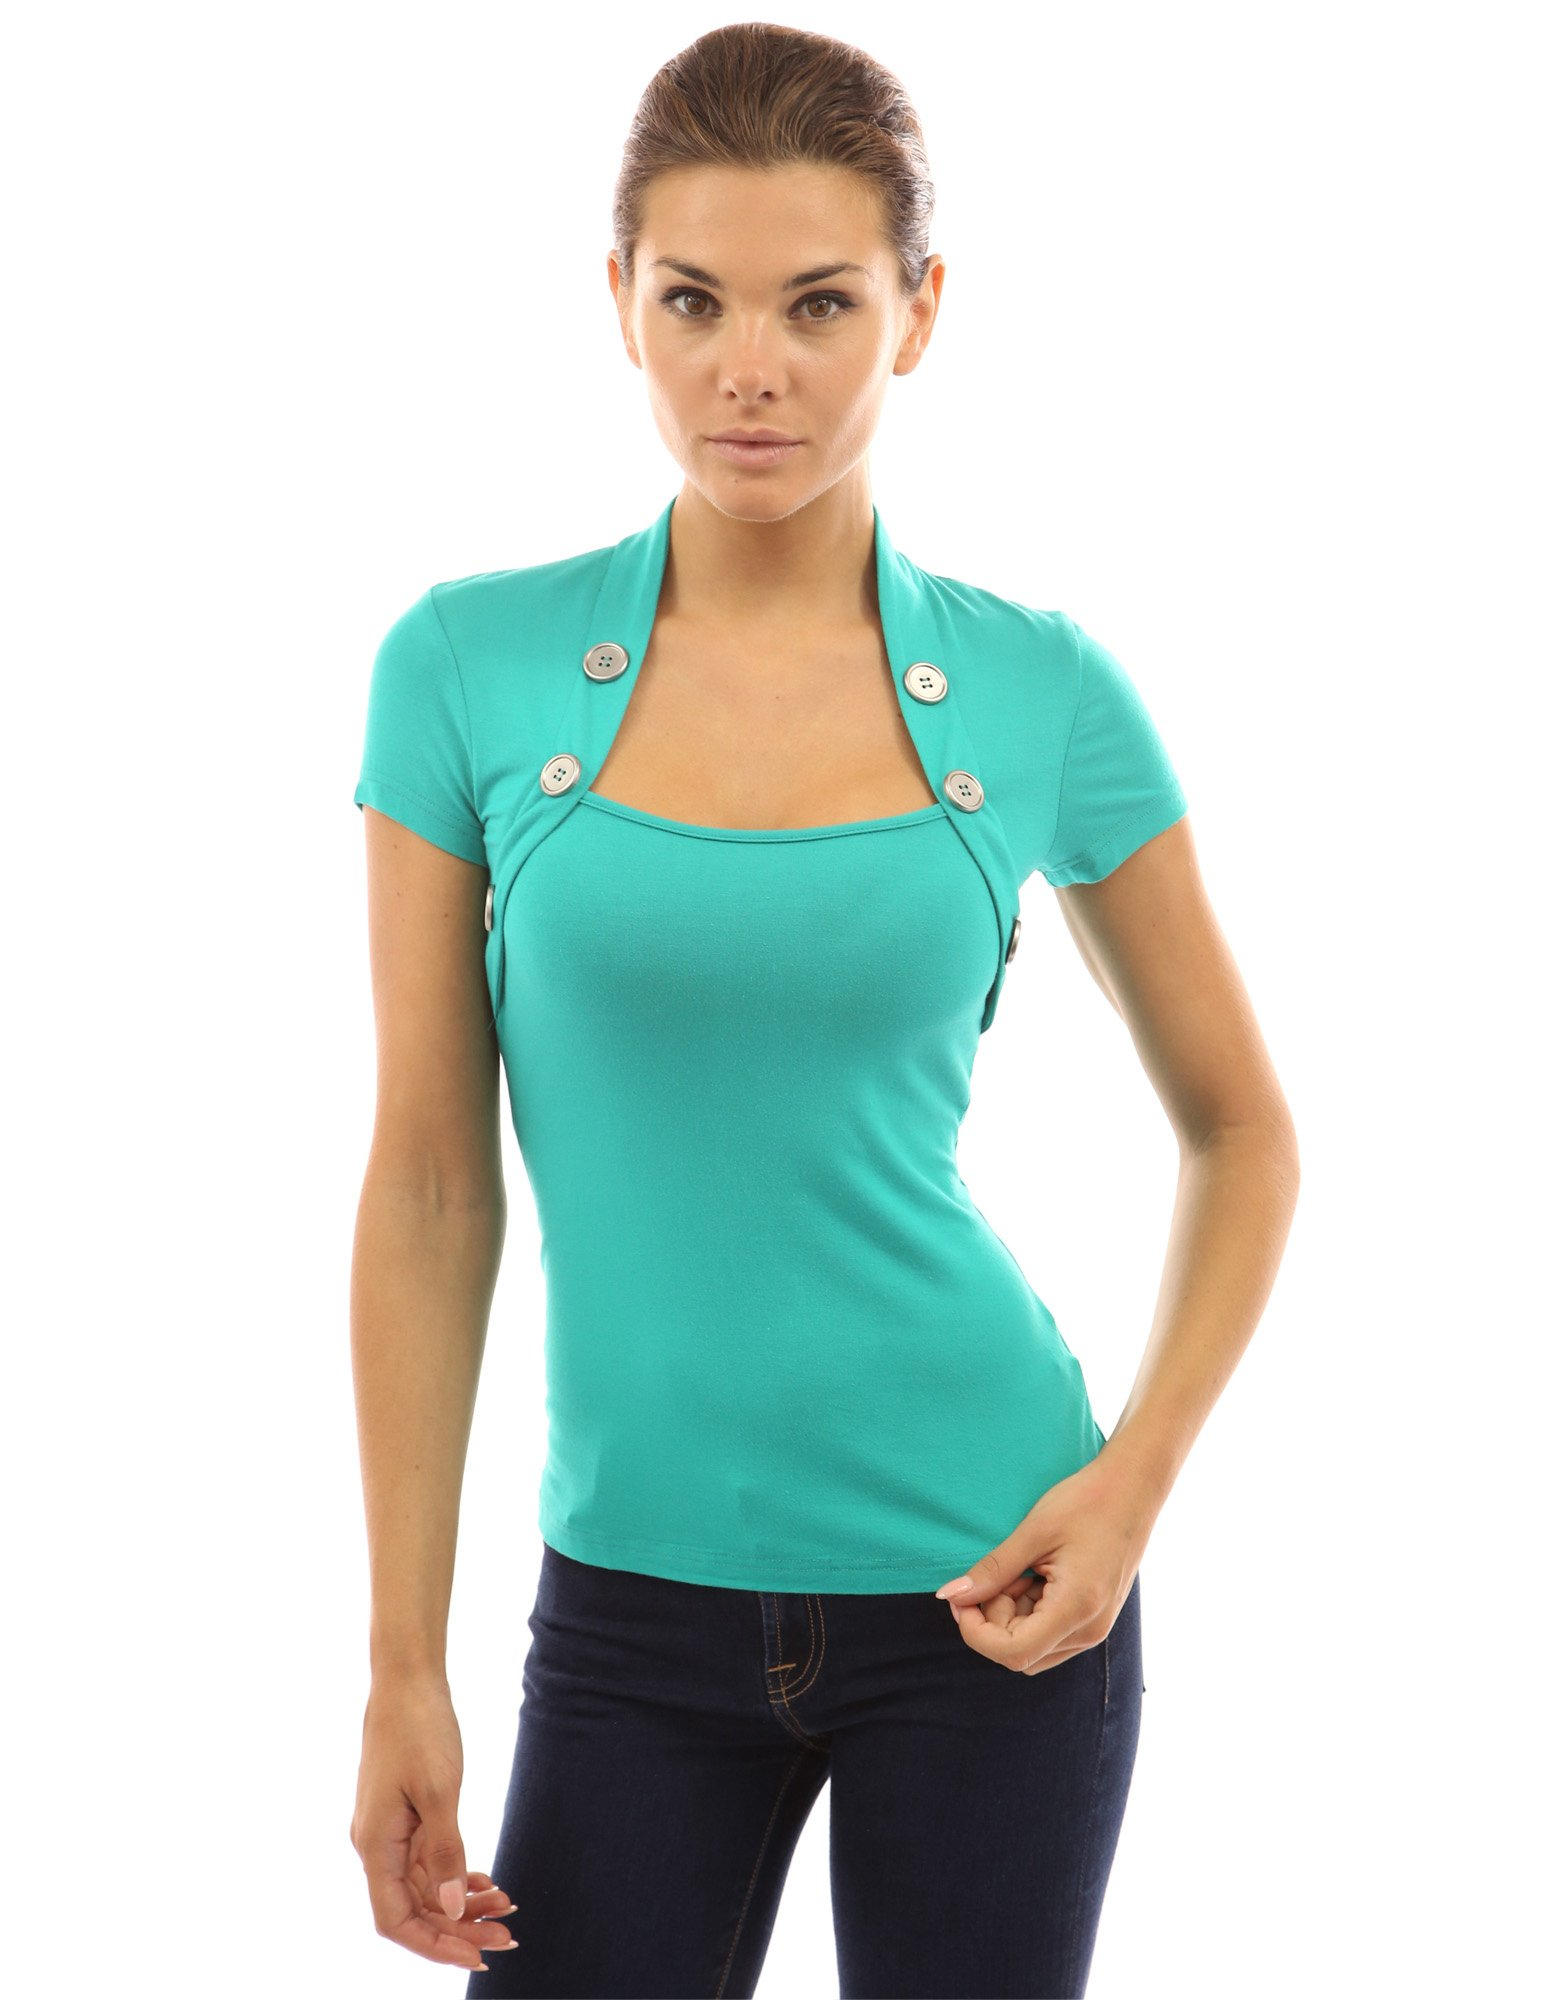 PattyBoutik Women's Bolero Style Embellished with Buttons Blouse (Turquoise M)